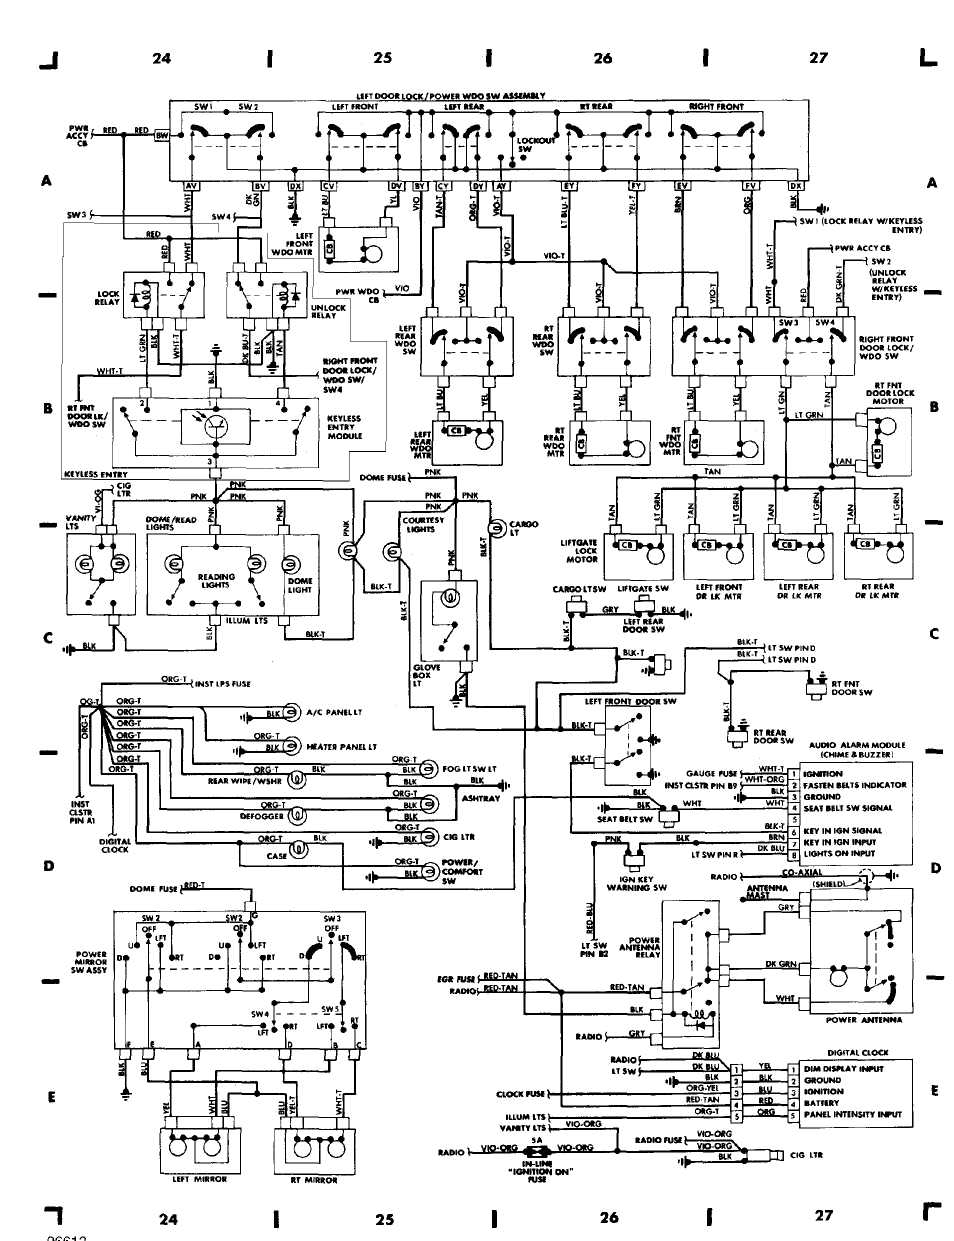 Jeep Engine Diagram | Schematic Diagram - 1995 Jeep Cherokee Wiring Diagram